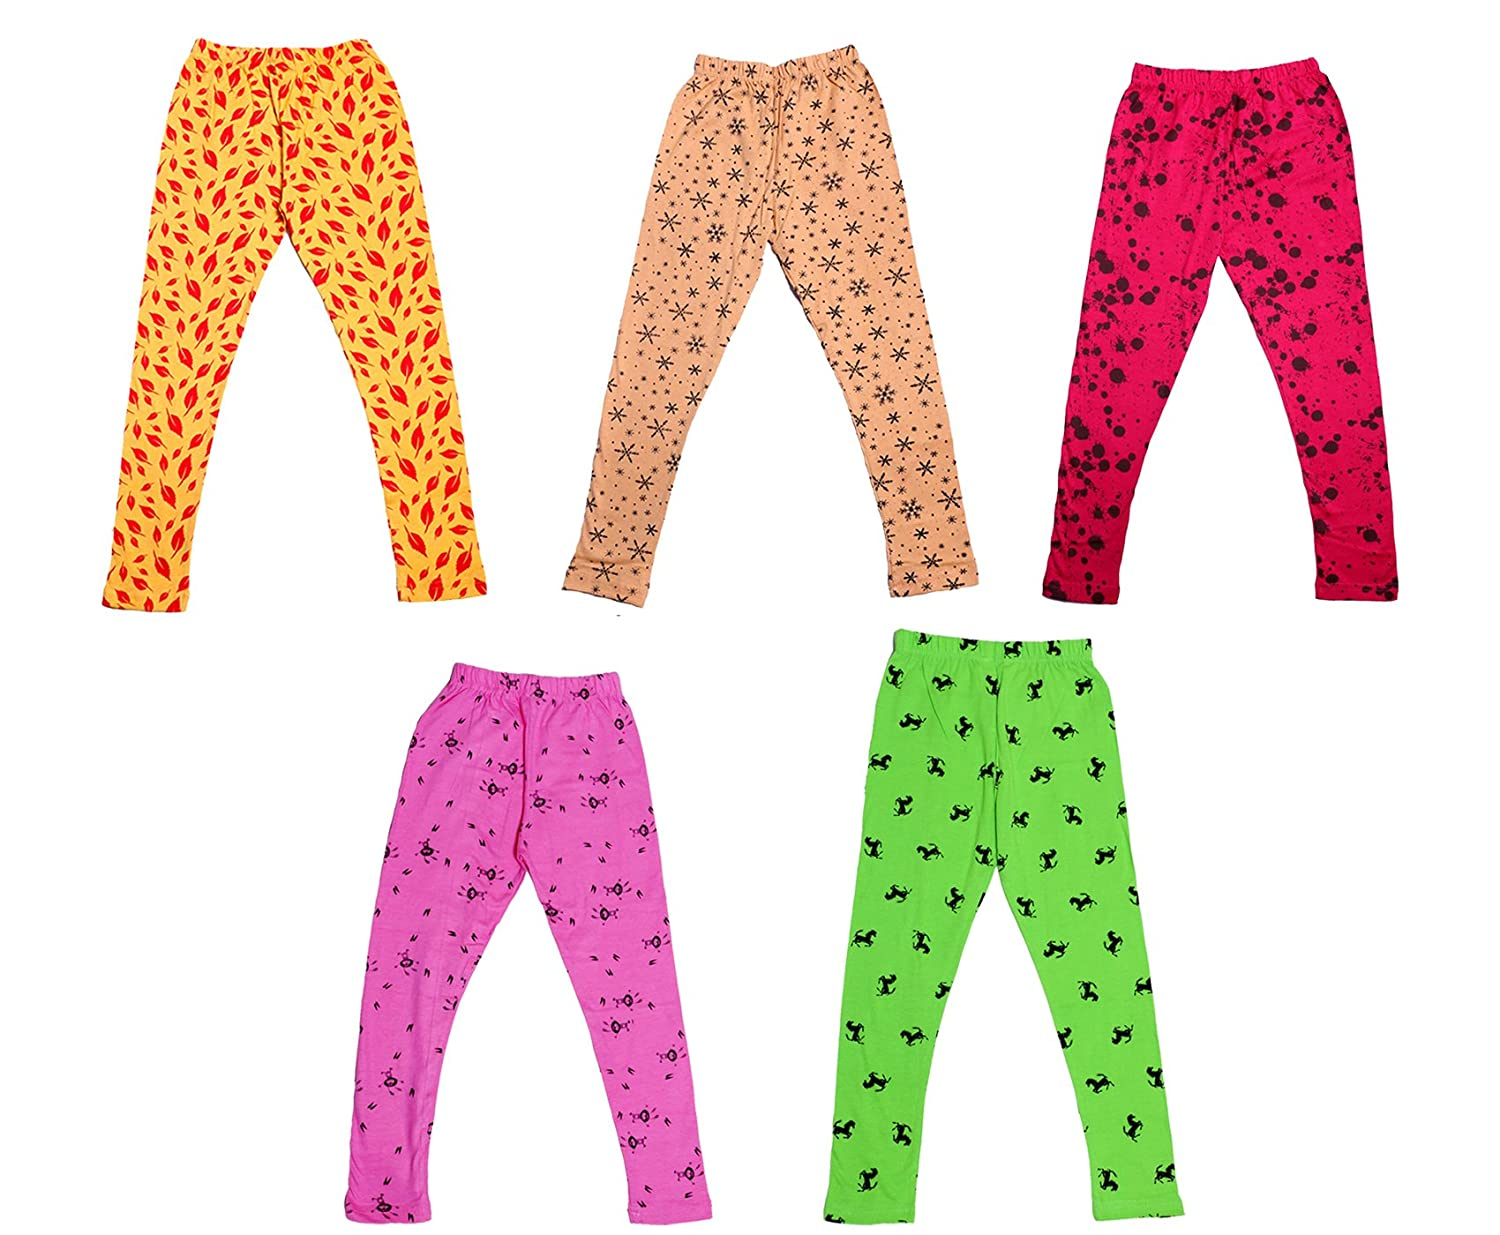 Indistar IndiWeaves Girls Super Soft and Stylish Cotton Printed Legging Pack Of 5